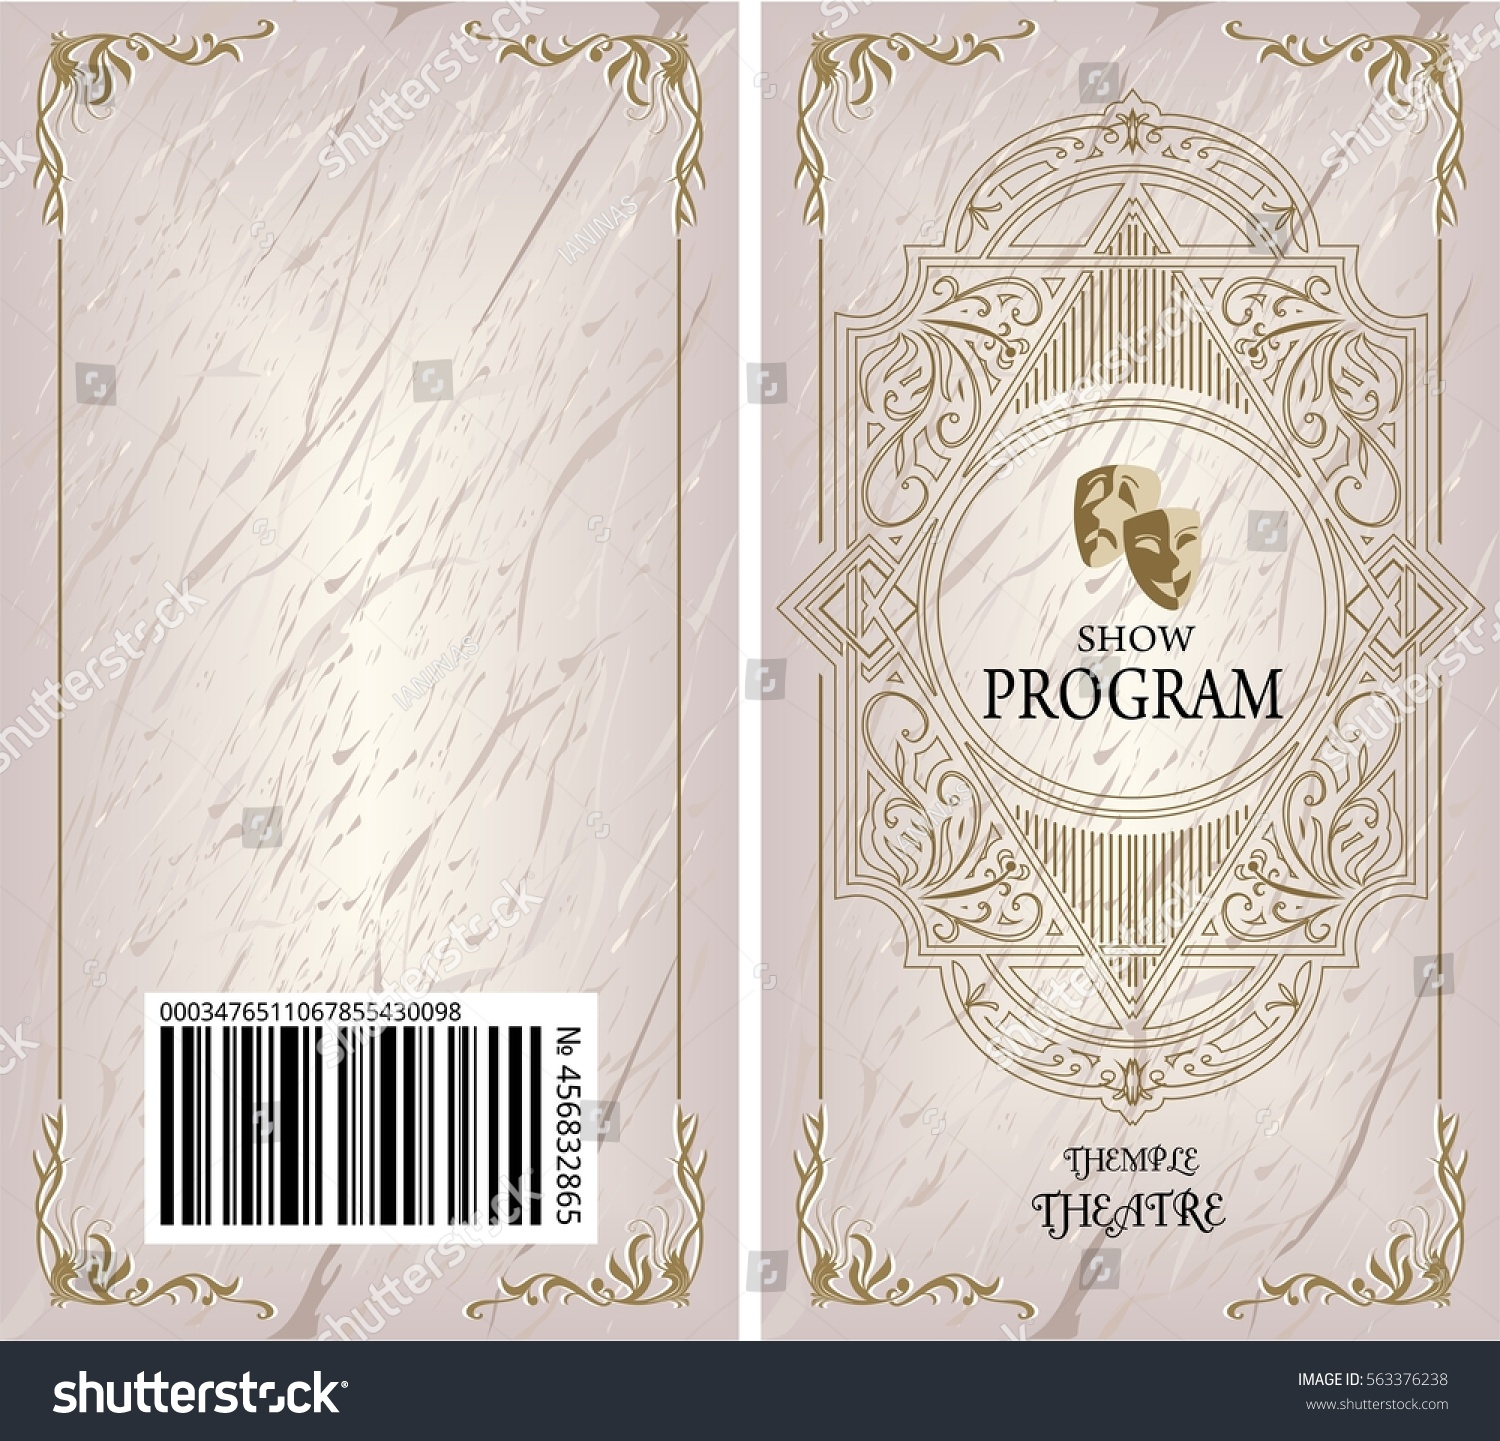 theater program booklet brochure cover book stock vector royalty